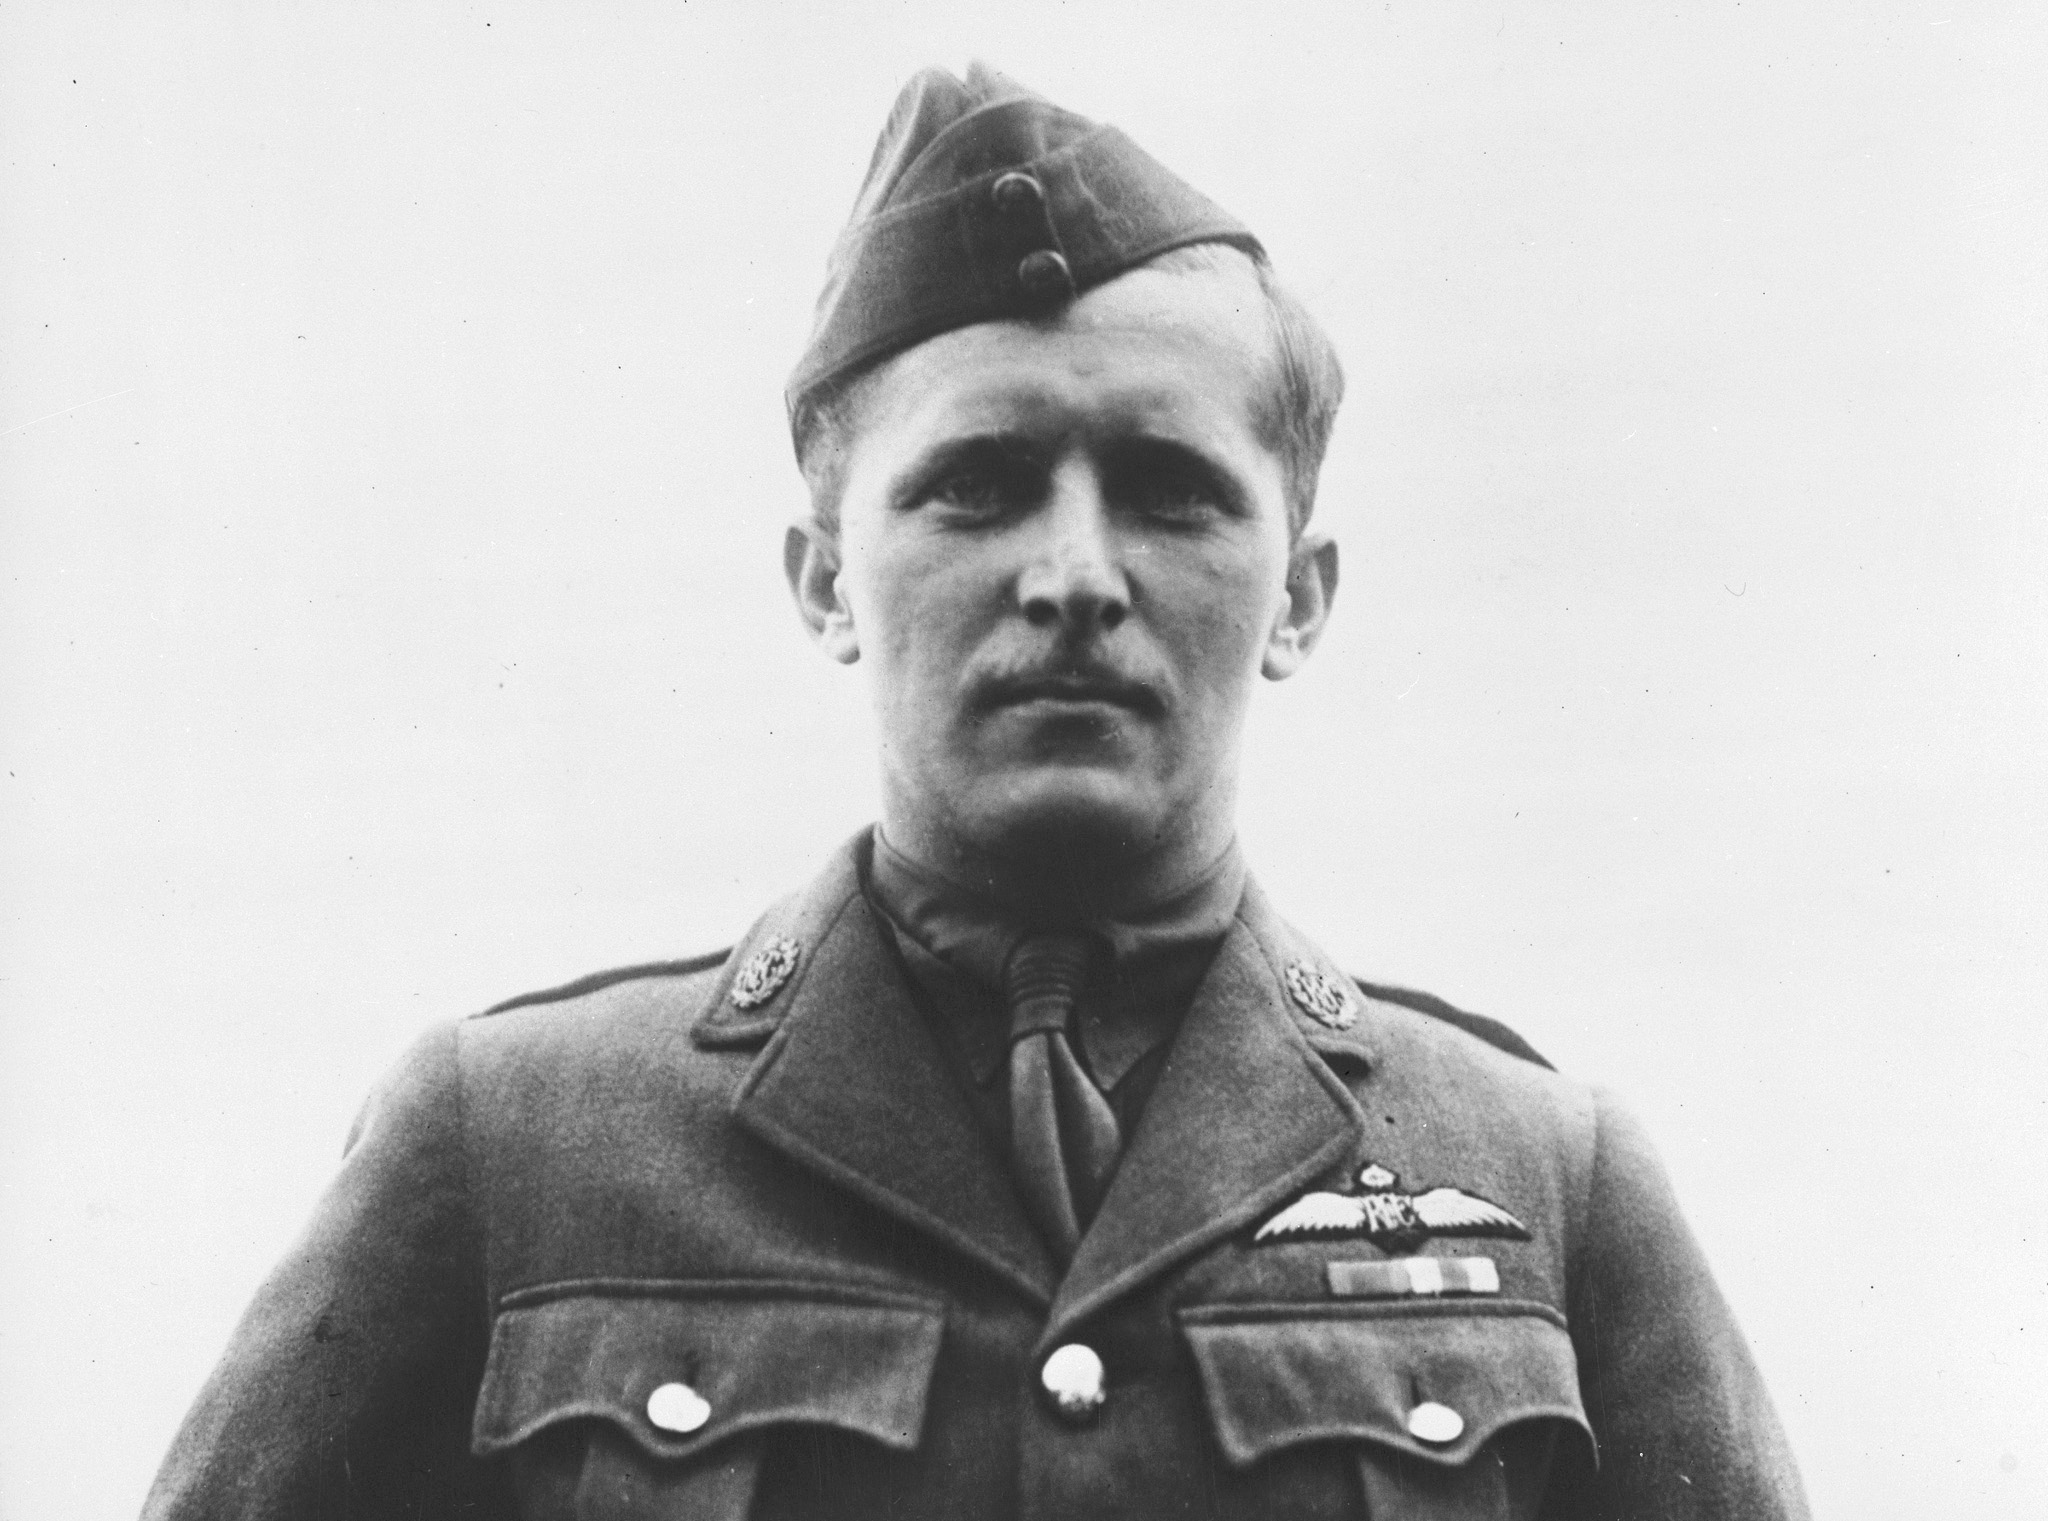 Captain William A. Bishop